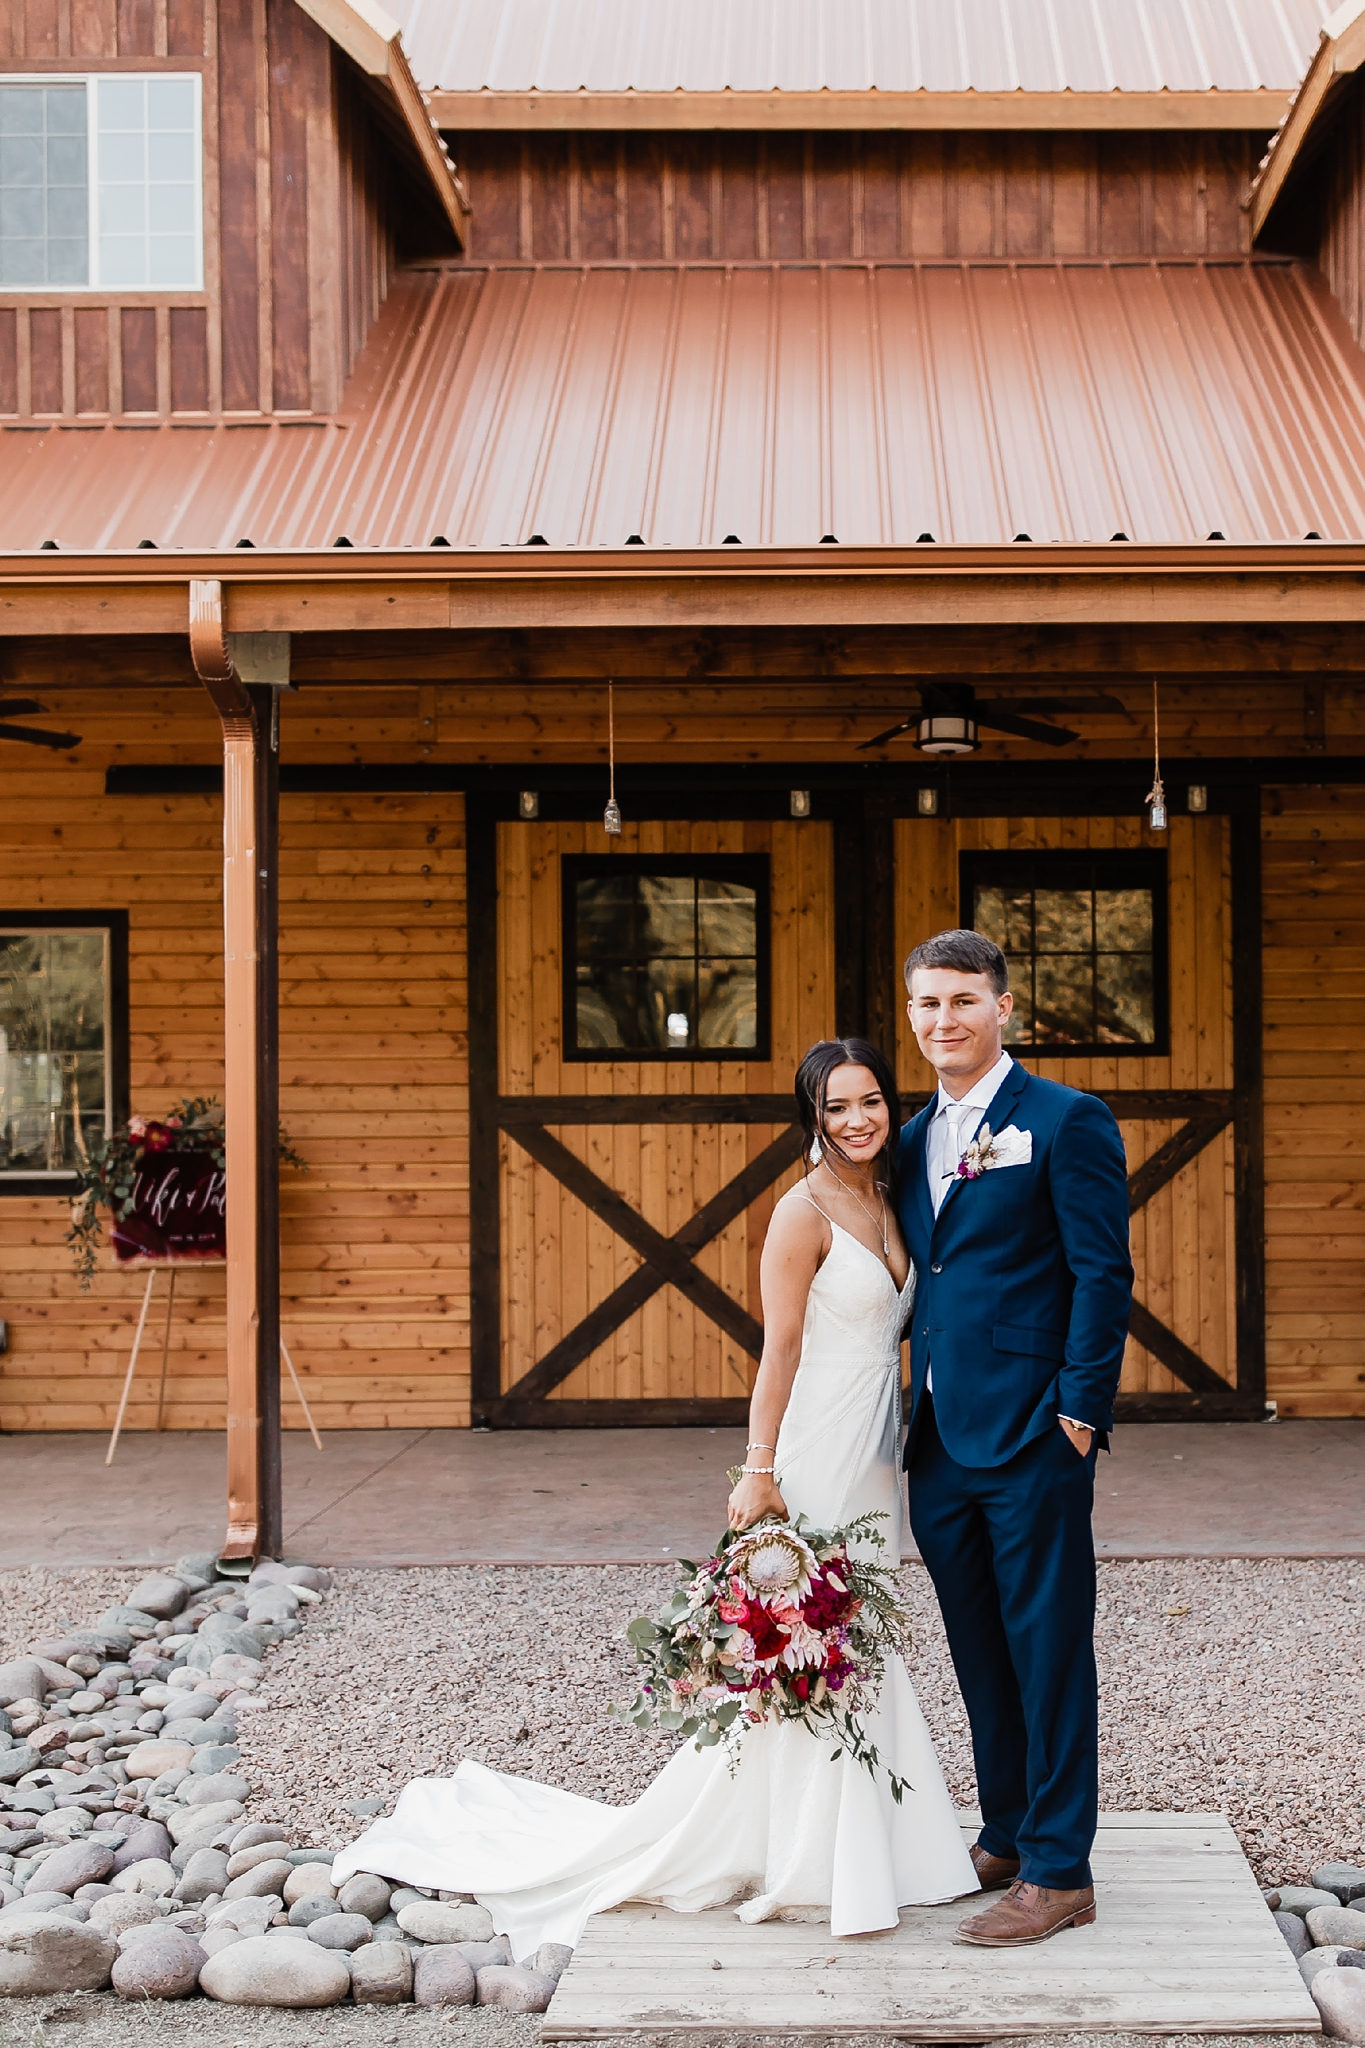 Alicia+lucia+photography+-+albuquerque+wedding+photographer+-+santa+fe+wedding+photography+-+new+mexico+wedding+photographer+-+new+mexico+wedding+-+new+mexico+wedding+-+barn+wedding+-+enchanted+vine+barn+wedding+-+ruidoso+wedding_0133.jpg